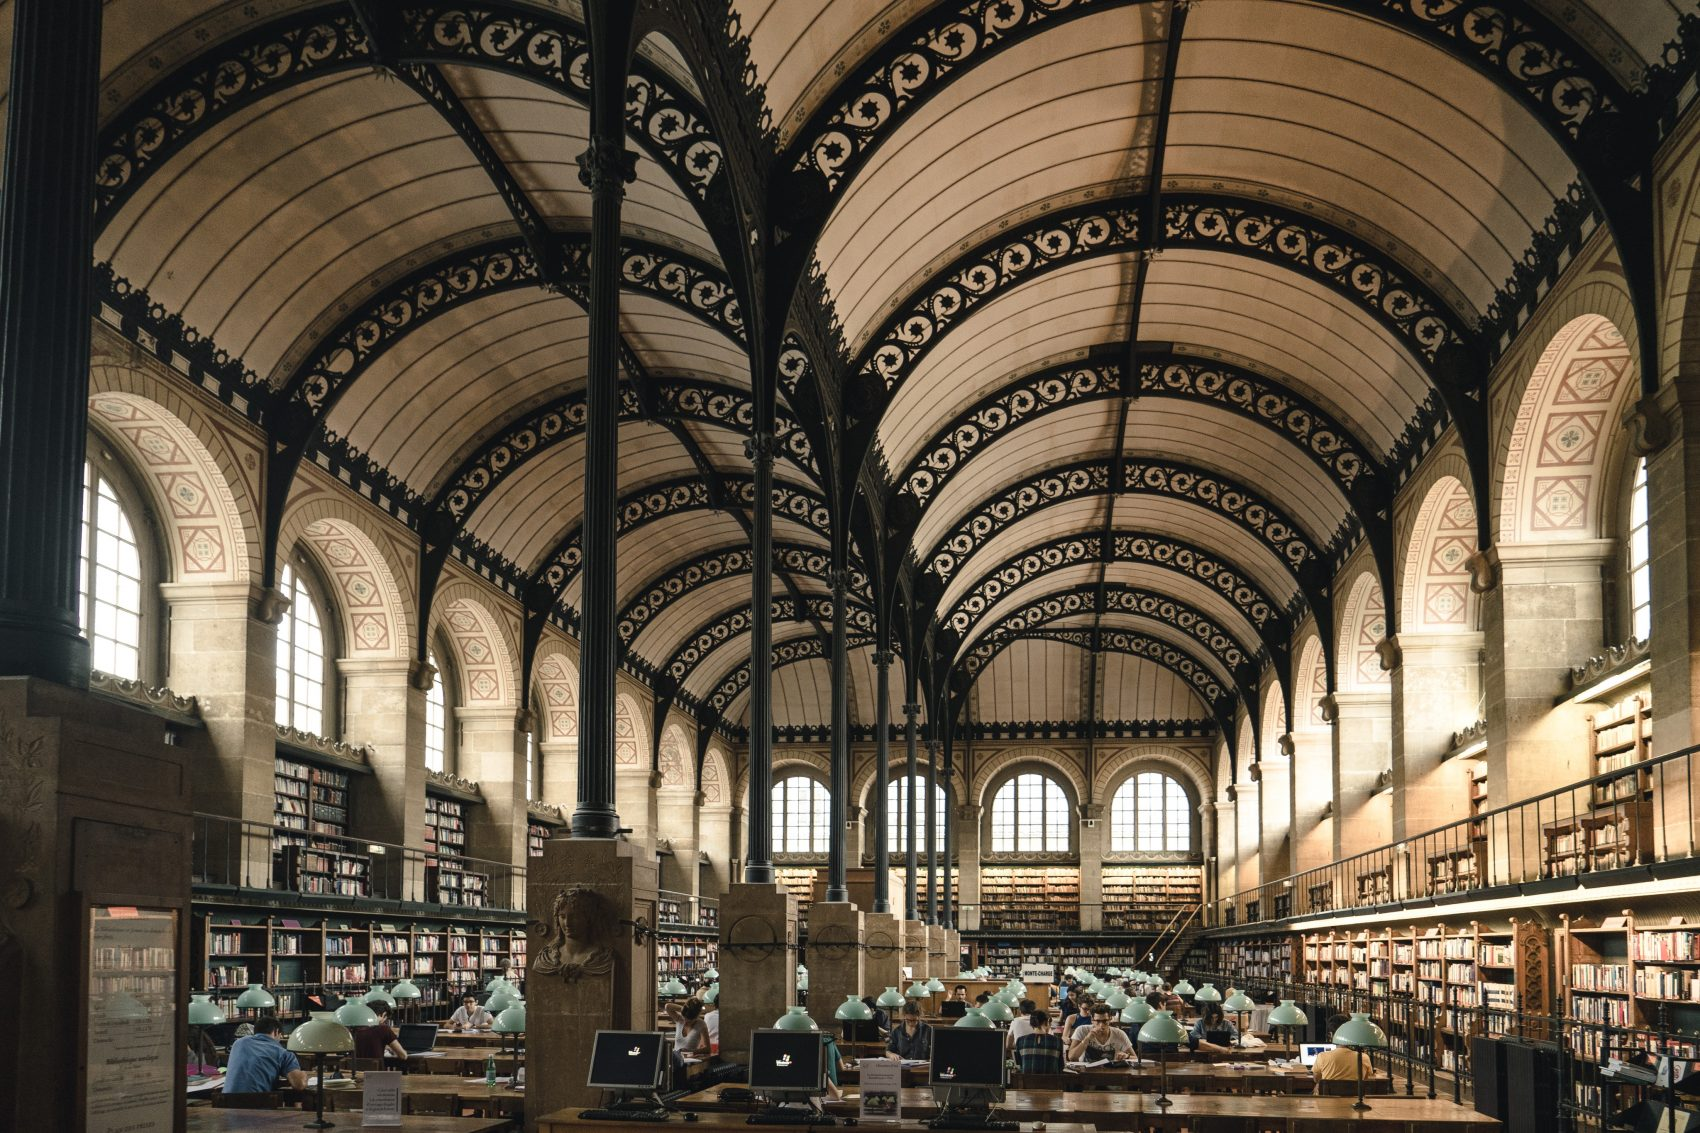 Many students enter college unsure of what they want to be when they grow up, writes Rich Barlow. Liberal arts let them explore various fields and options. (John Towner/Unsplash)